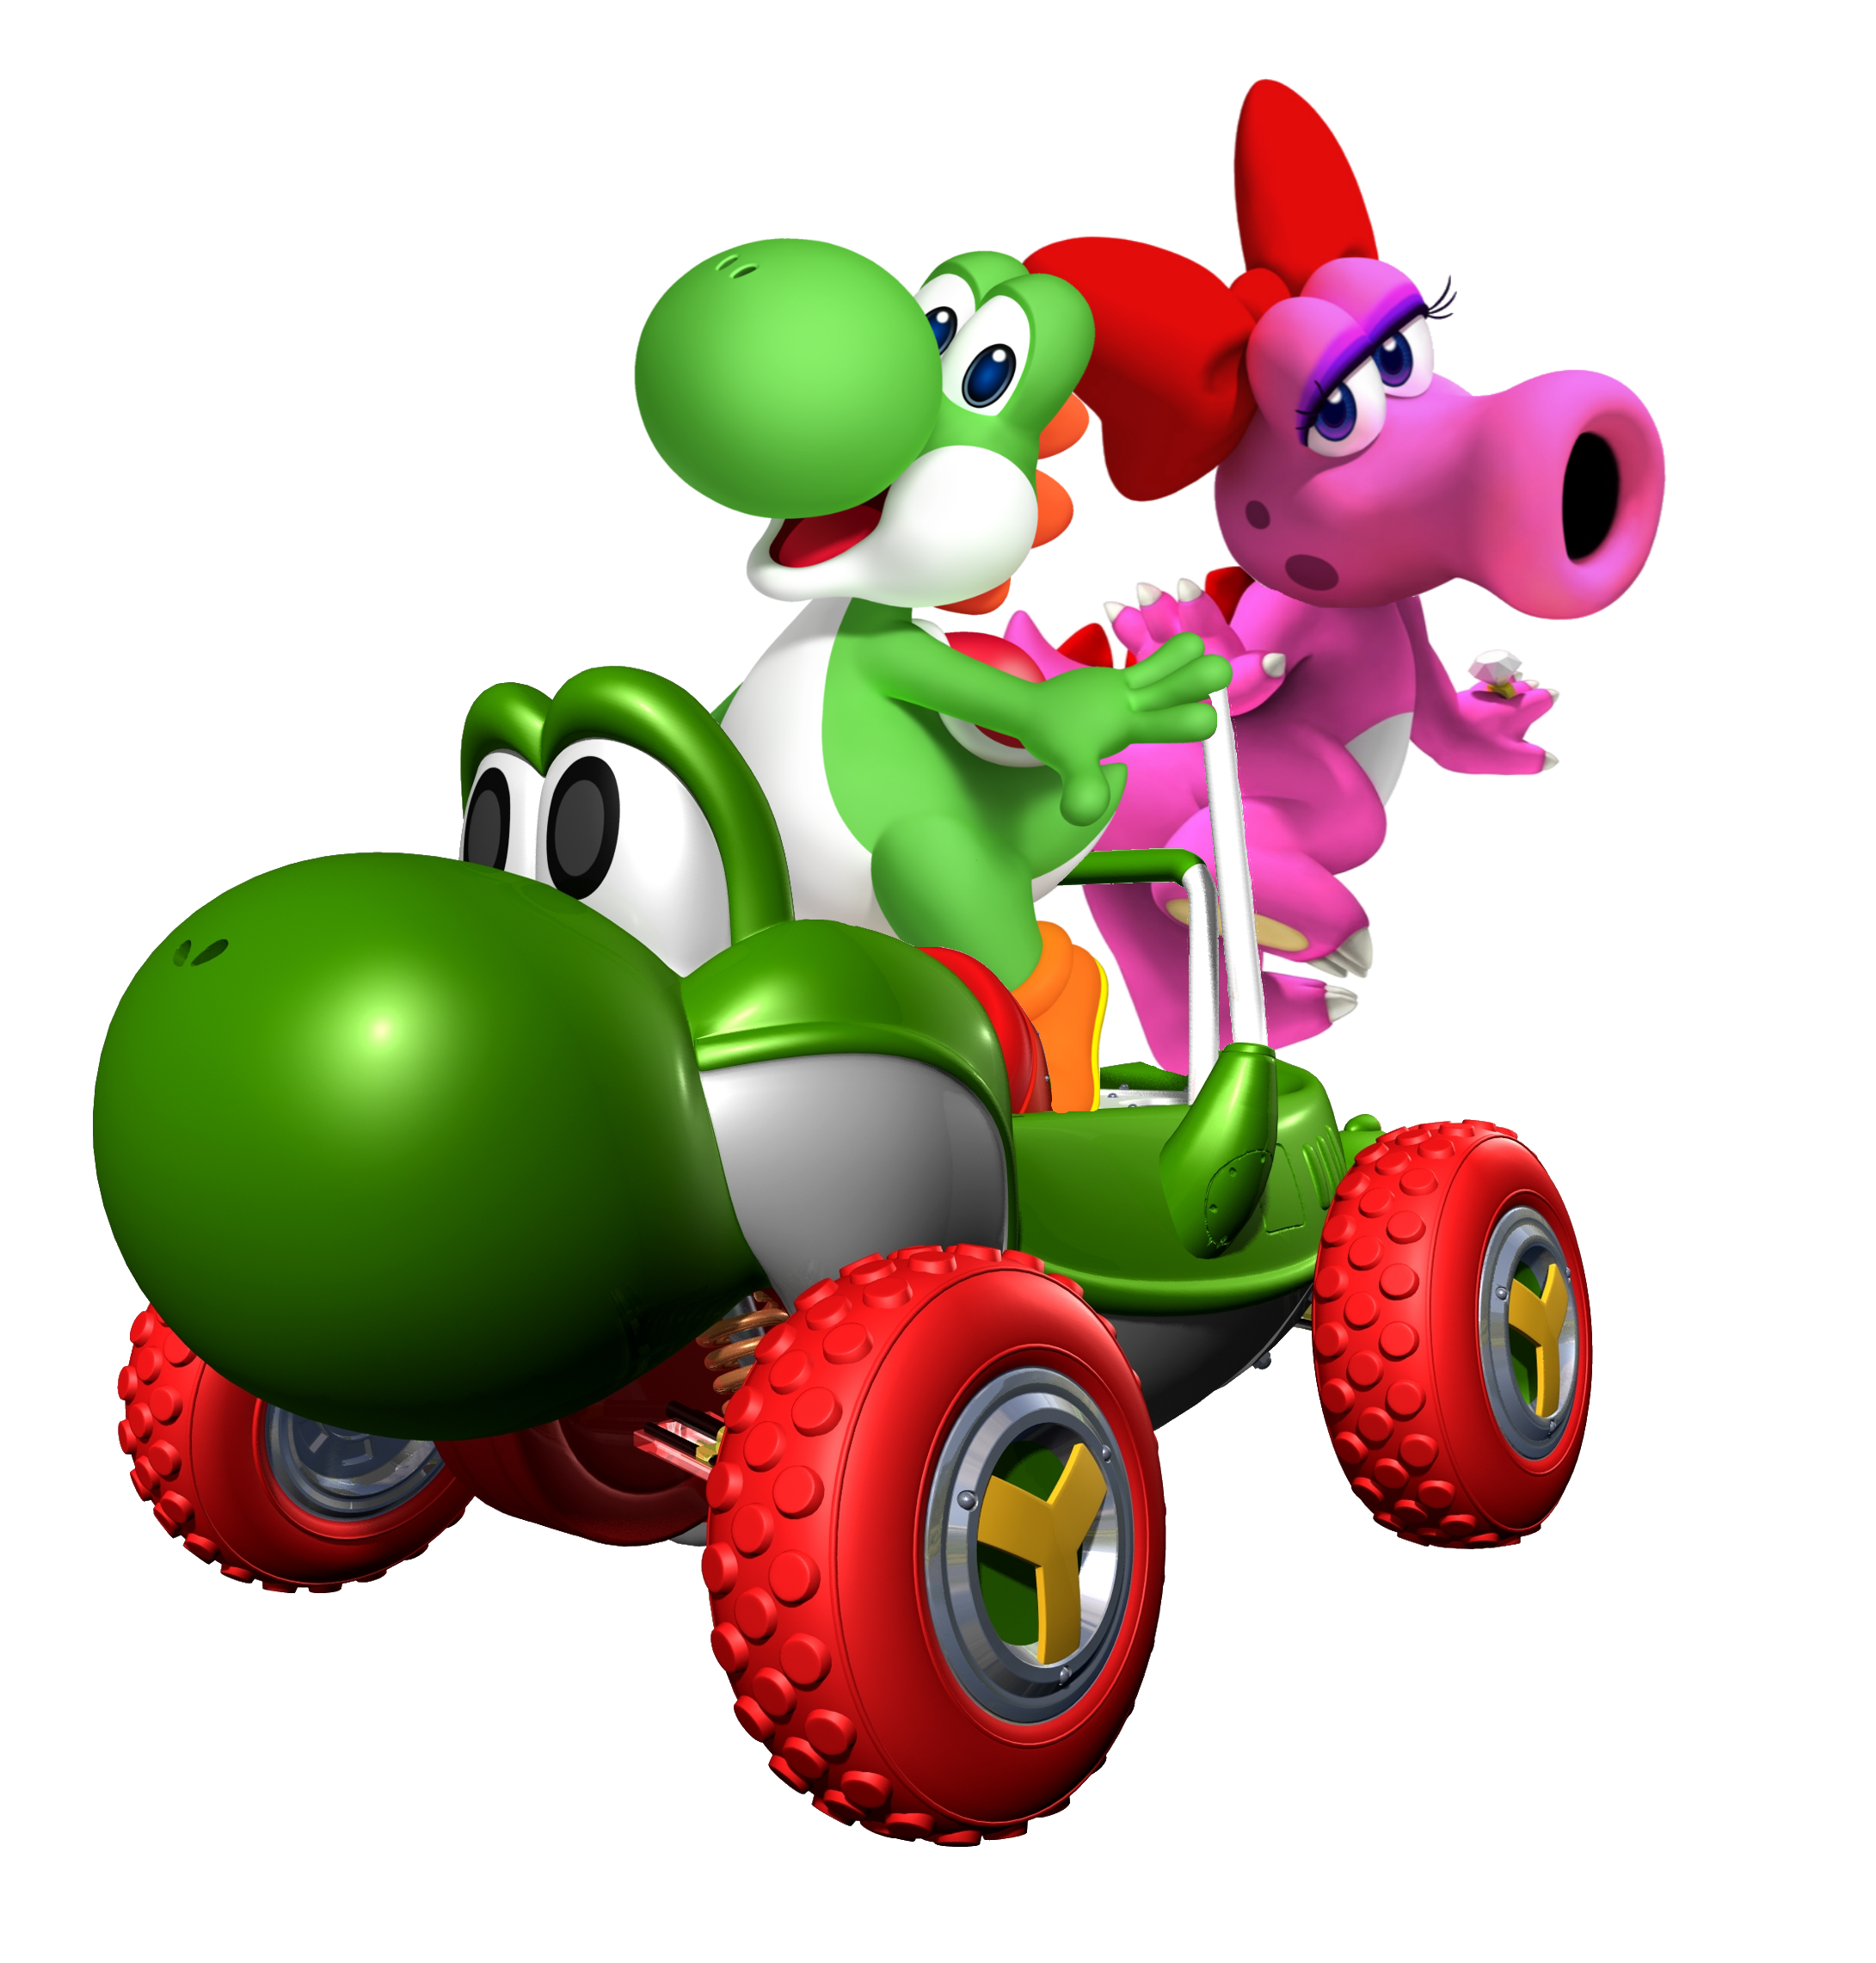 picture black and white stock Midget panda free images. Checkered clipart mario kart